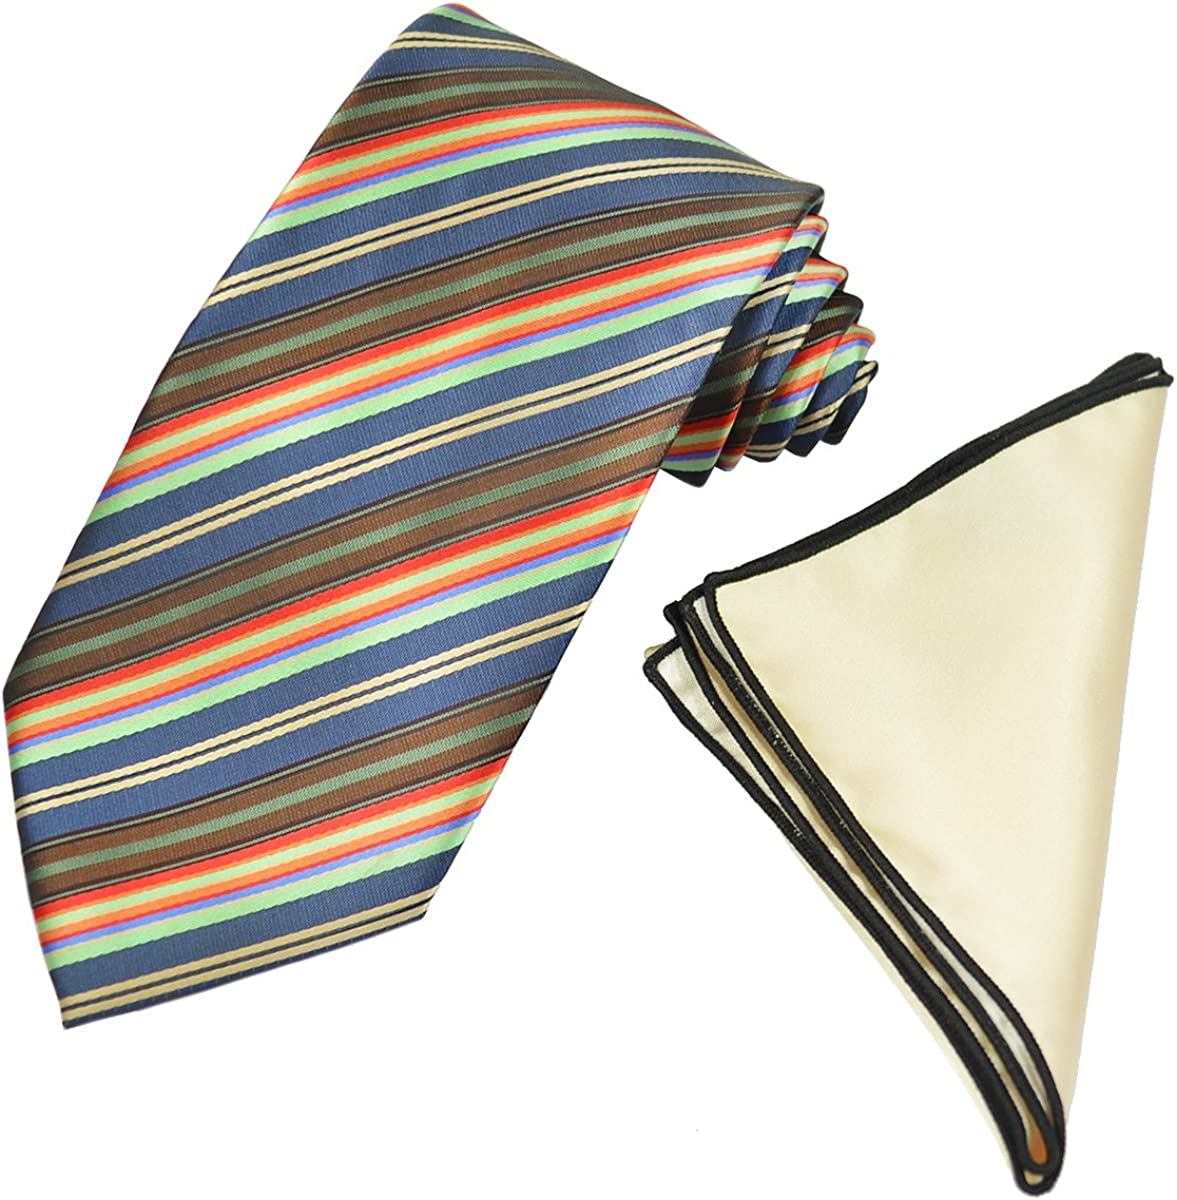 Navy Striped Men's Tie with Contrast Pocket Square Set